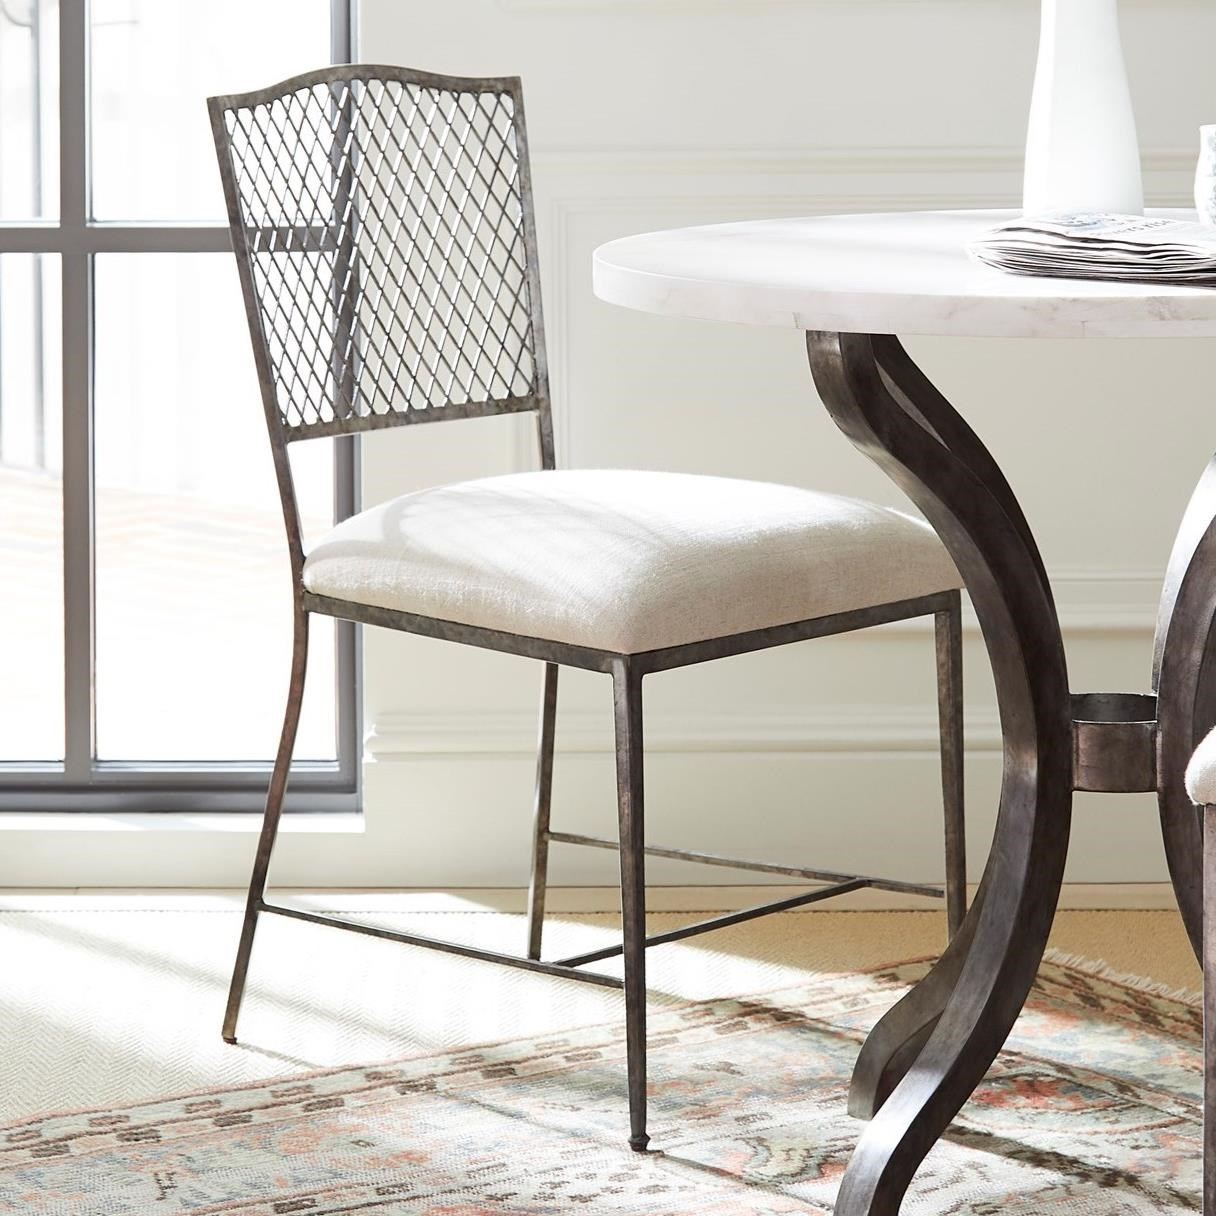 Stanley Furniture Willow Metal Bistro Chair Story Lee